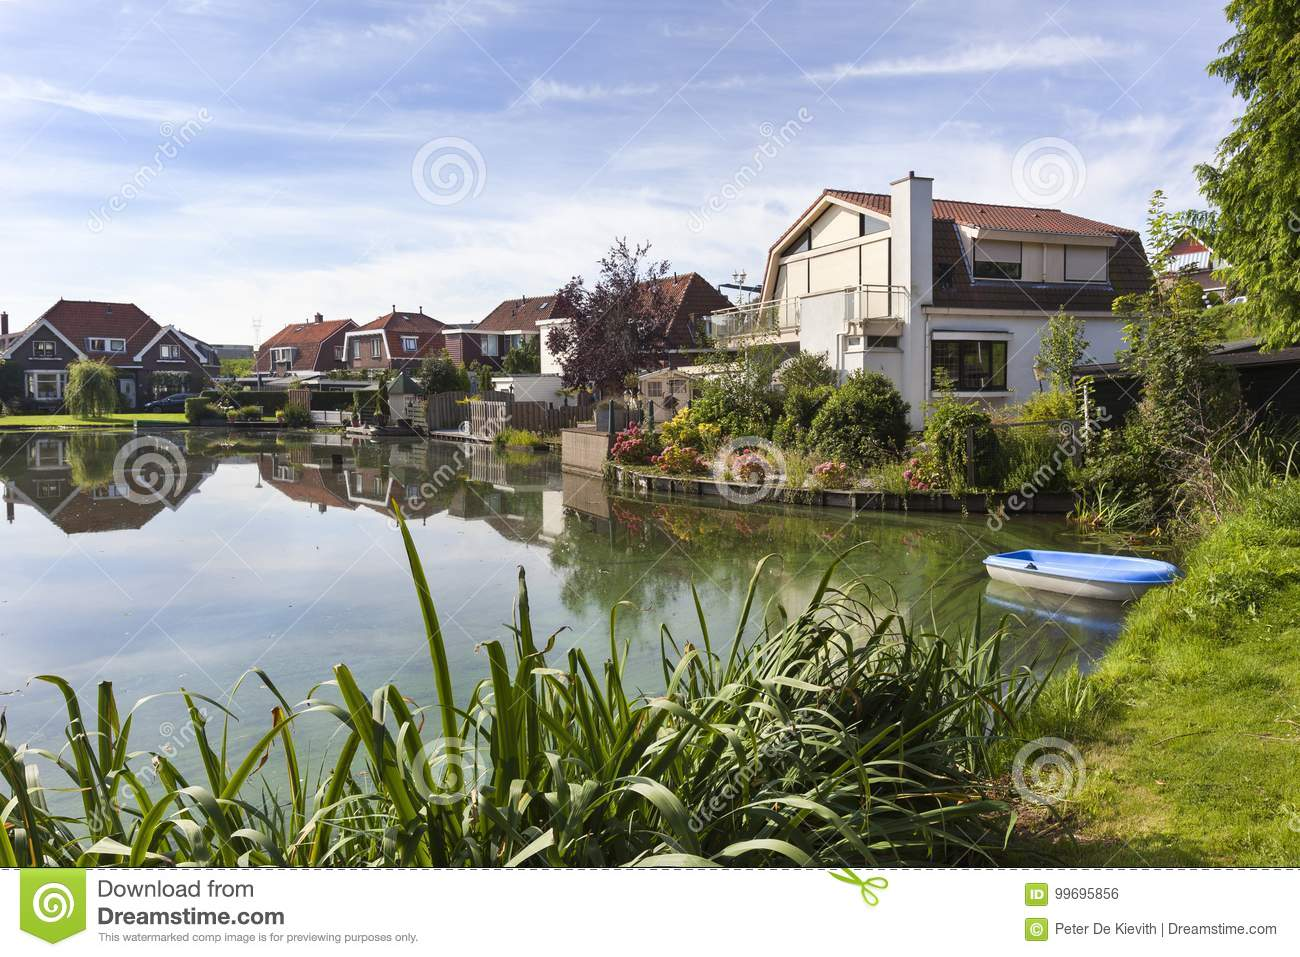 Traditional houses around a pond in the Netherlands